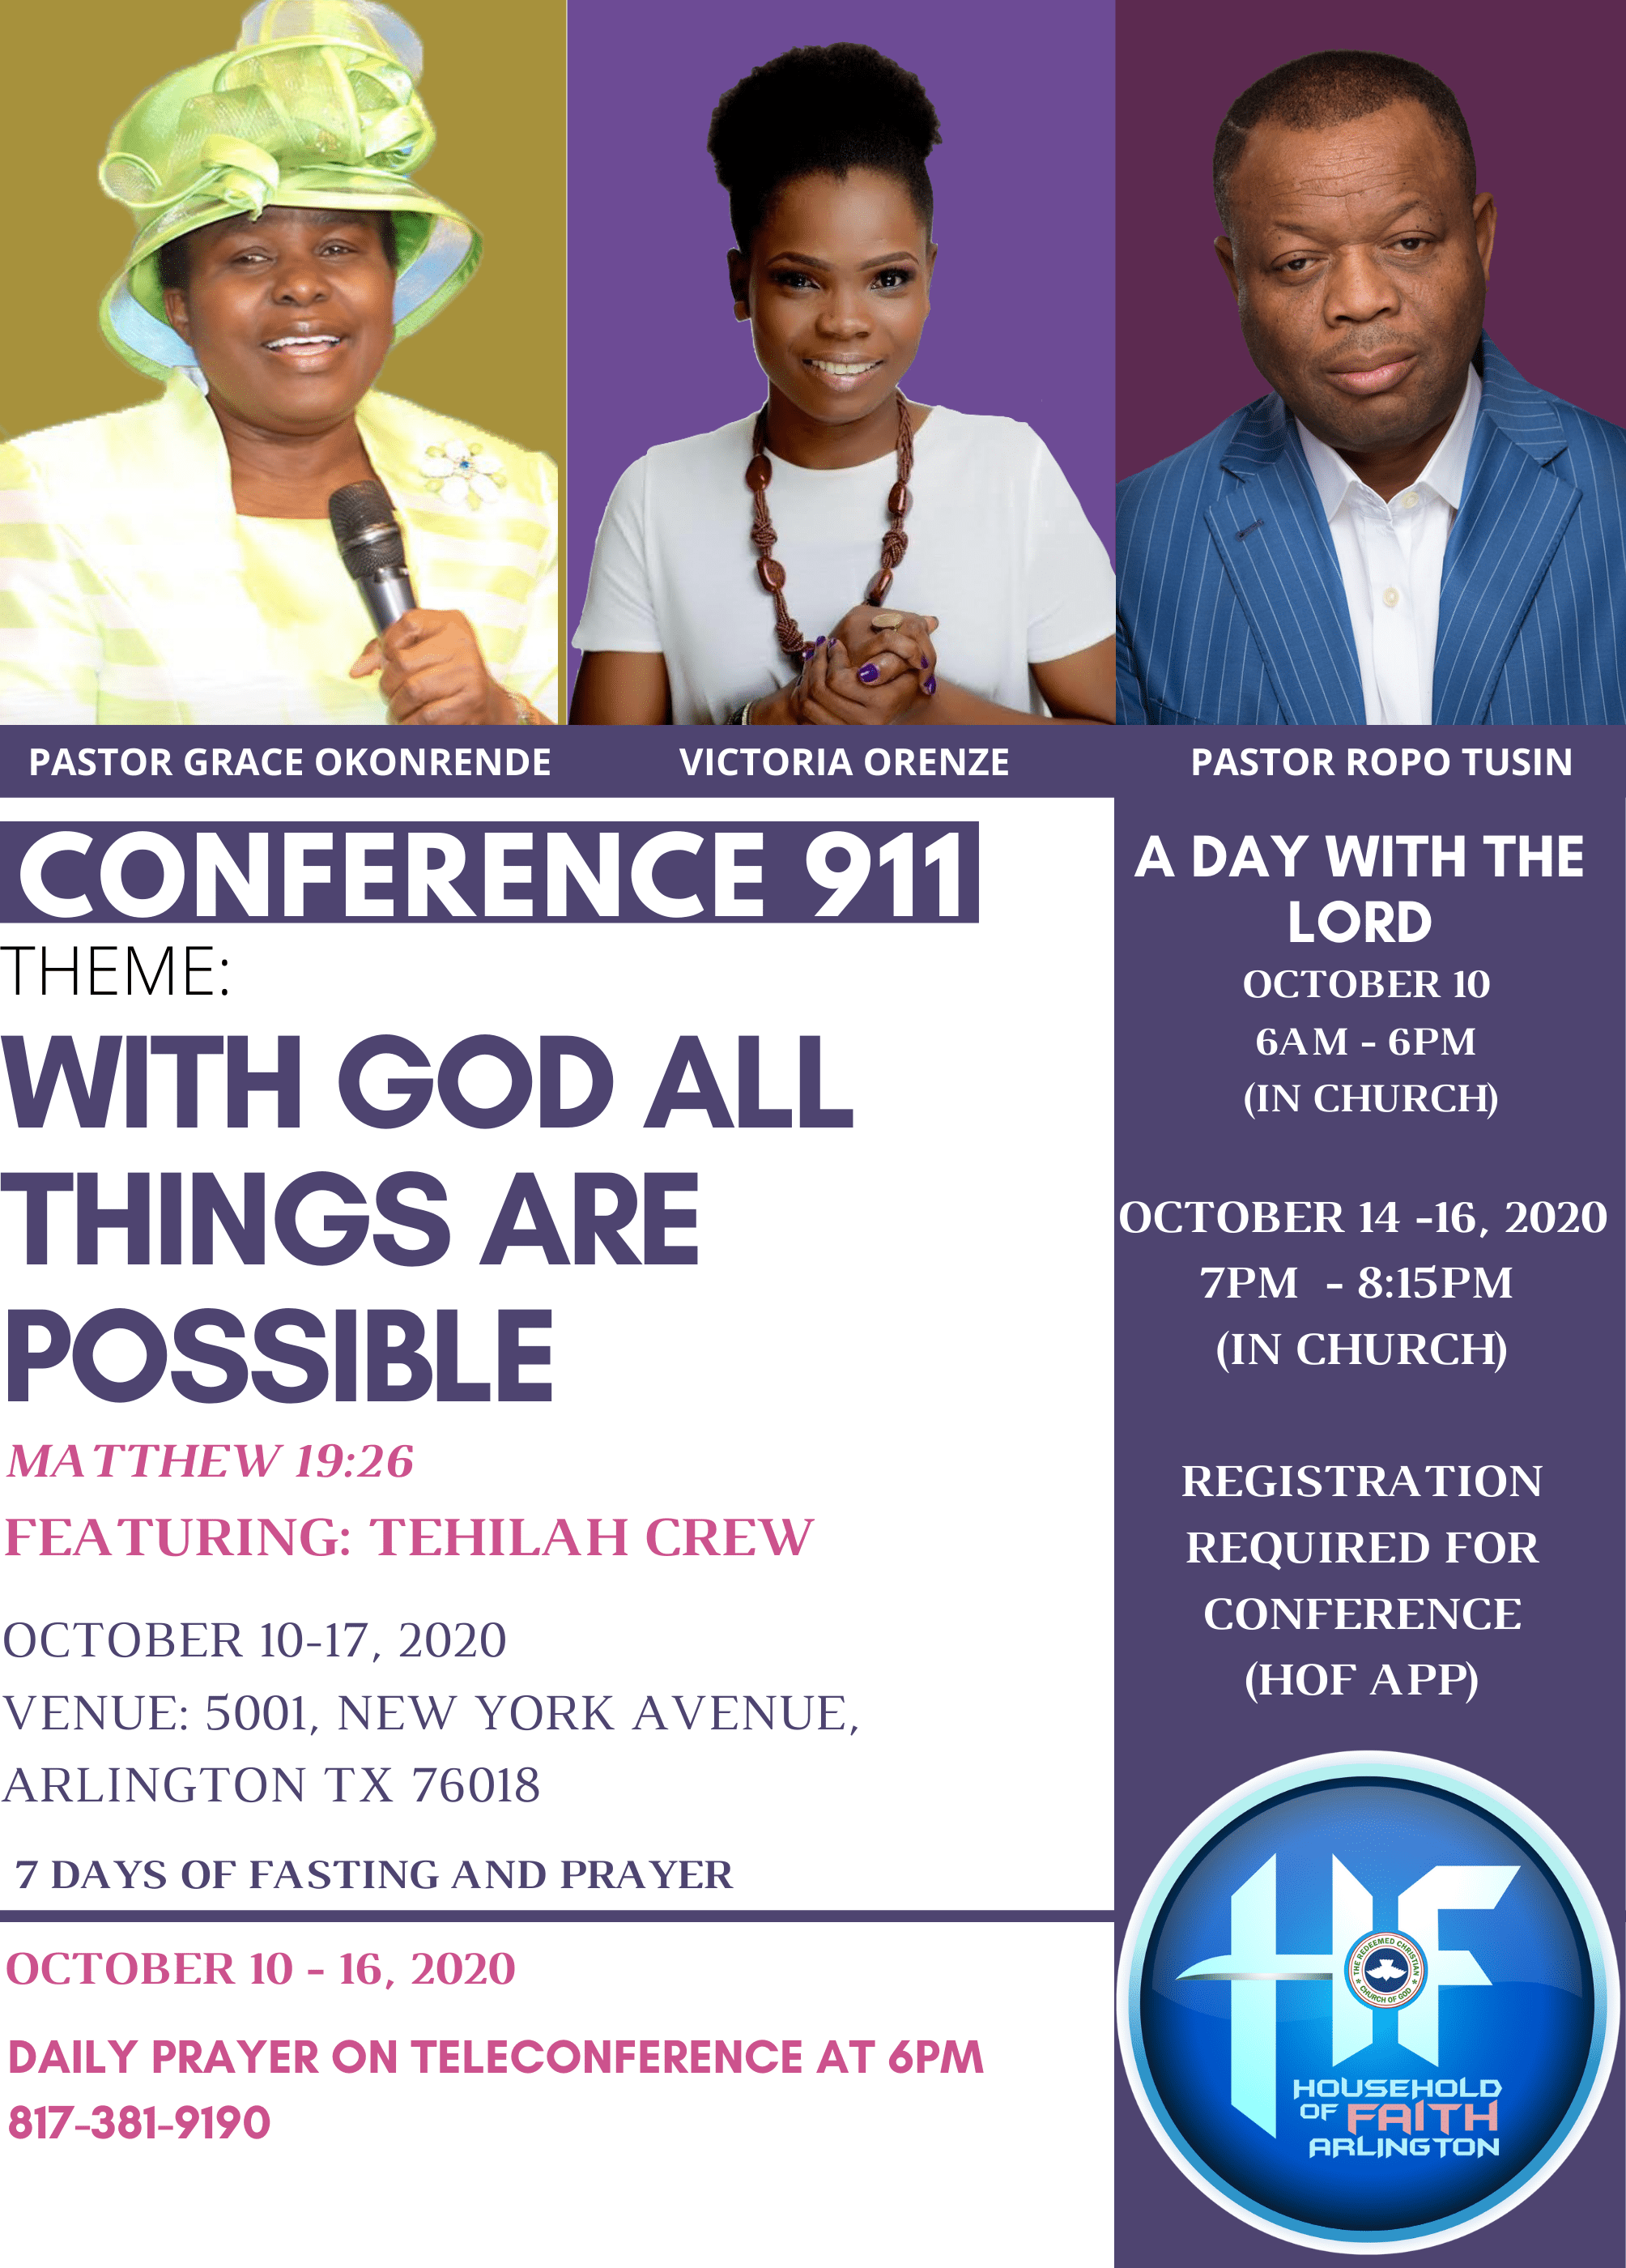 Conference 911